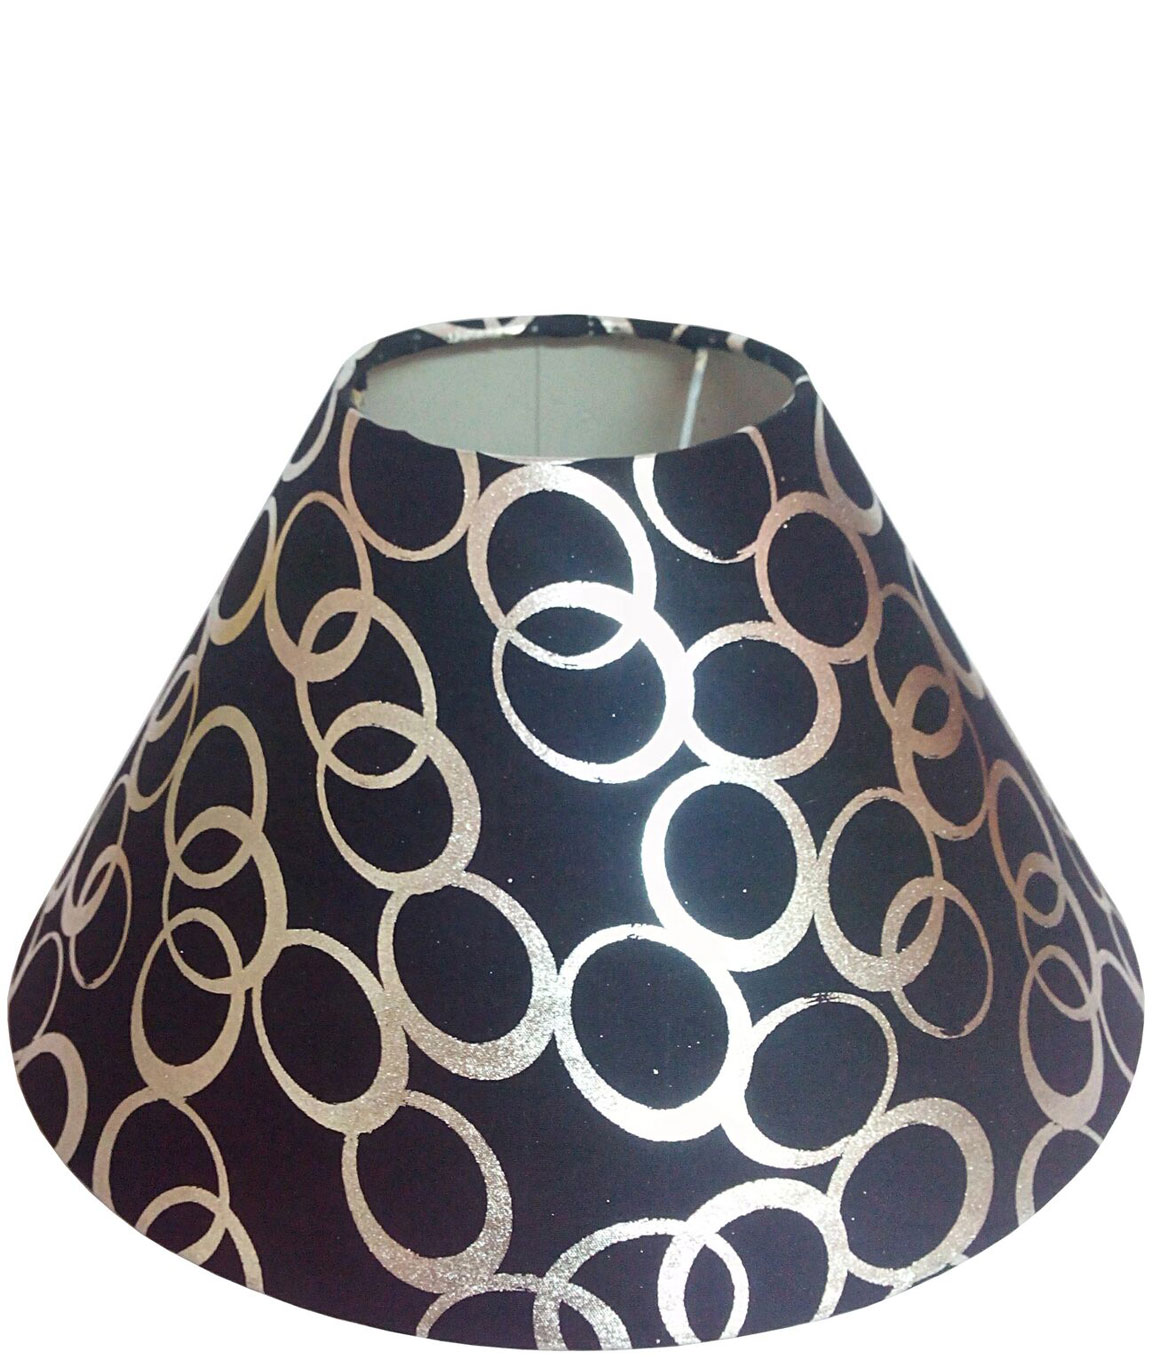 RDC 10 Inches Round Black with Silver Polka Dots Designer Lamp Shade